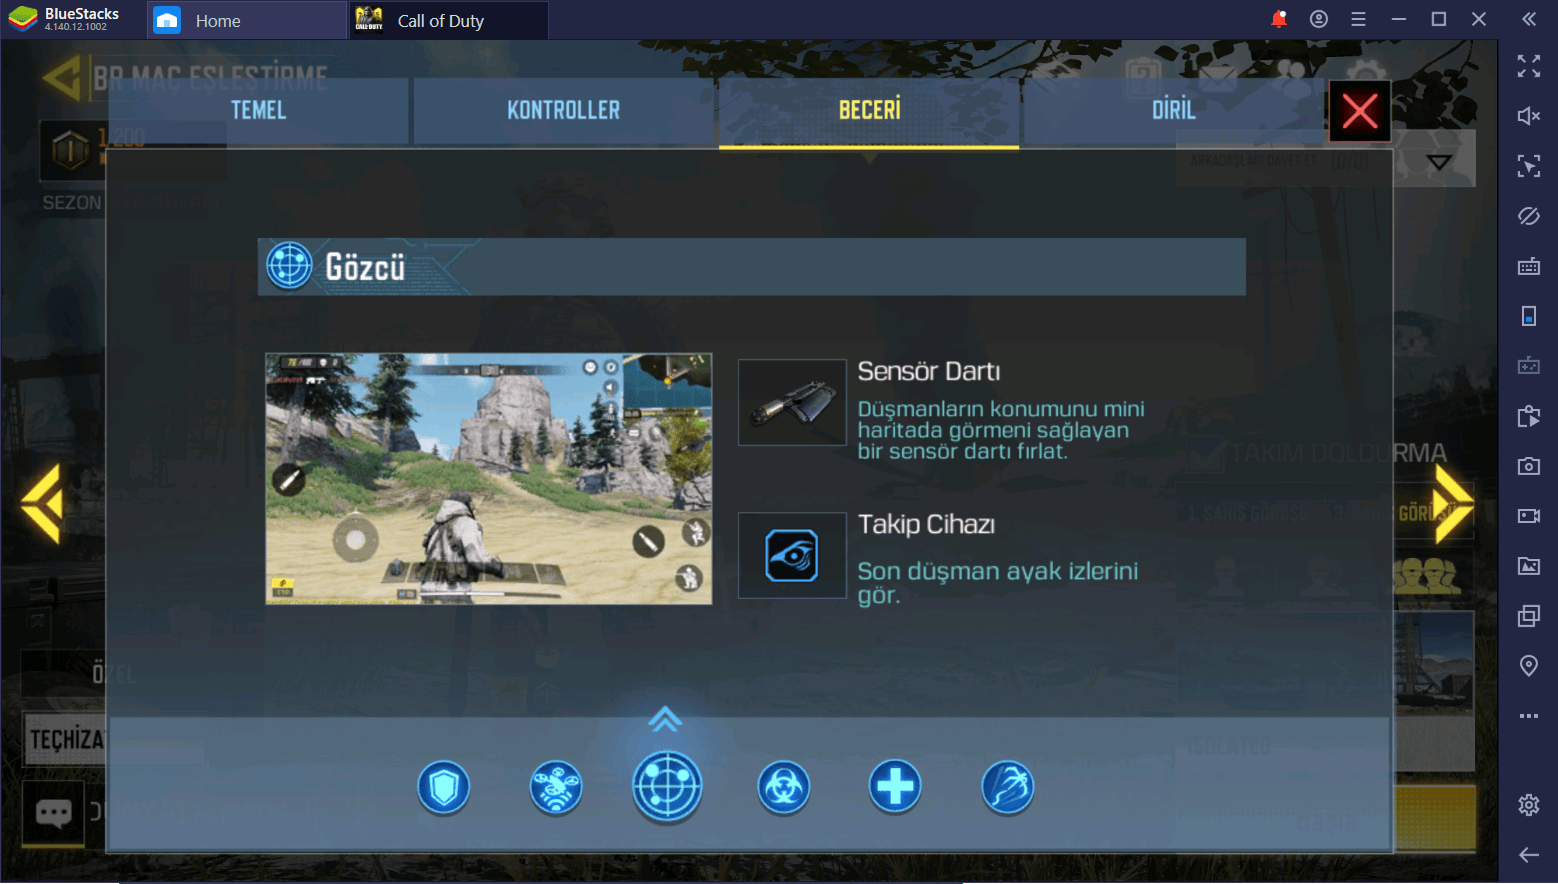 BlueStacks ile CoD Mobile Battle Royale Modunda Sona Kalan Olun!